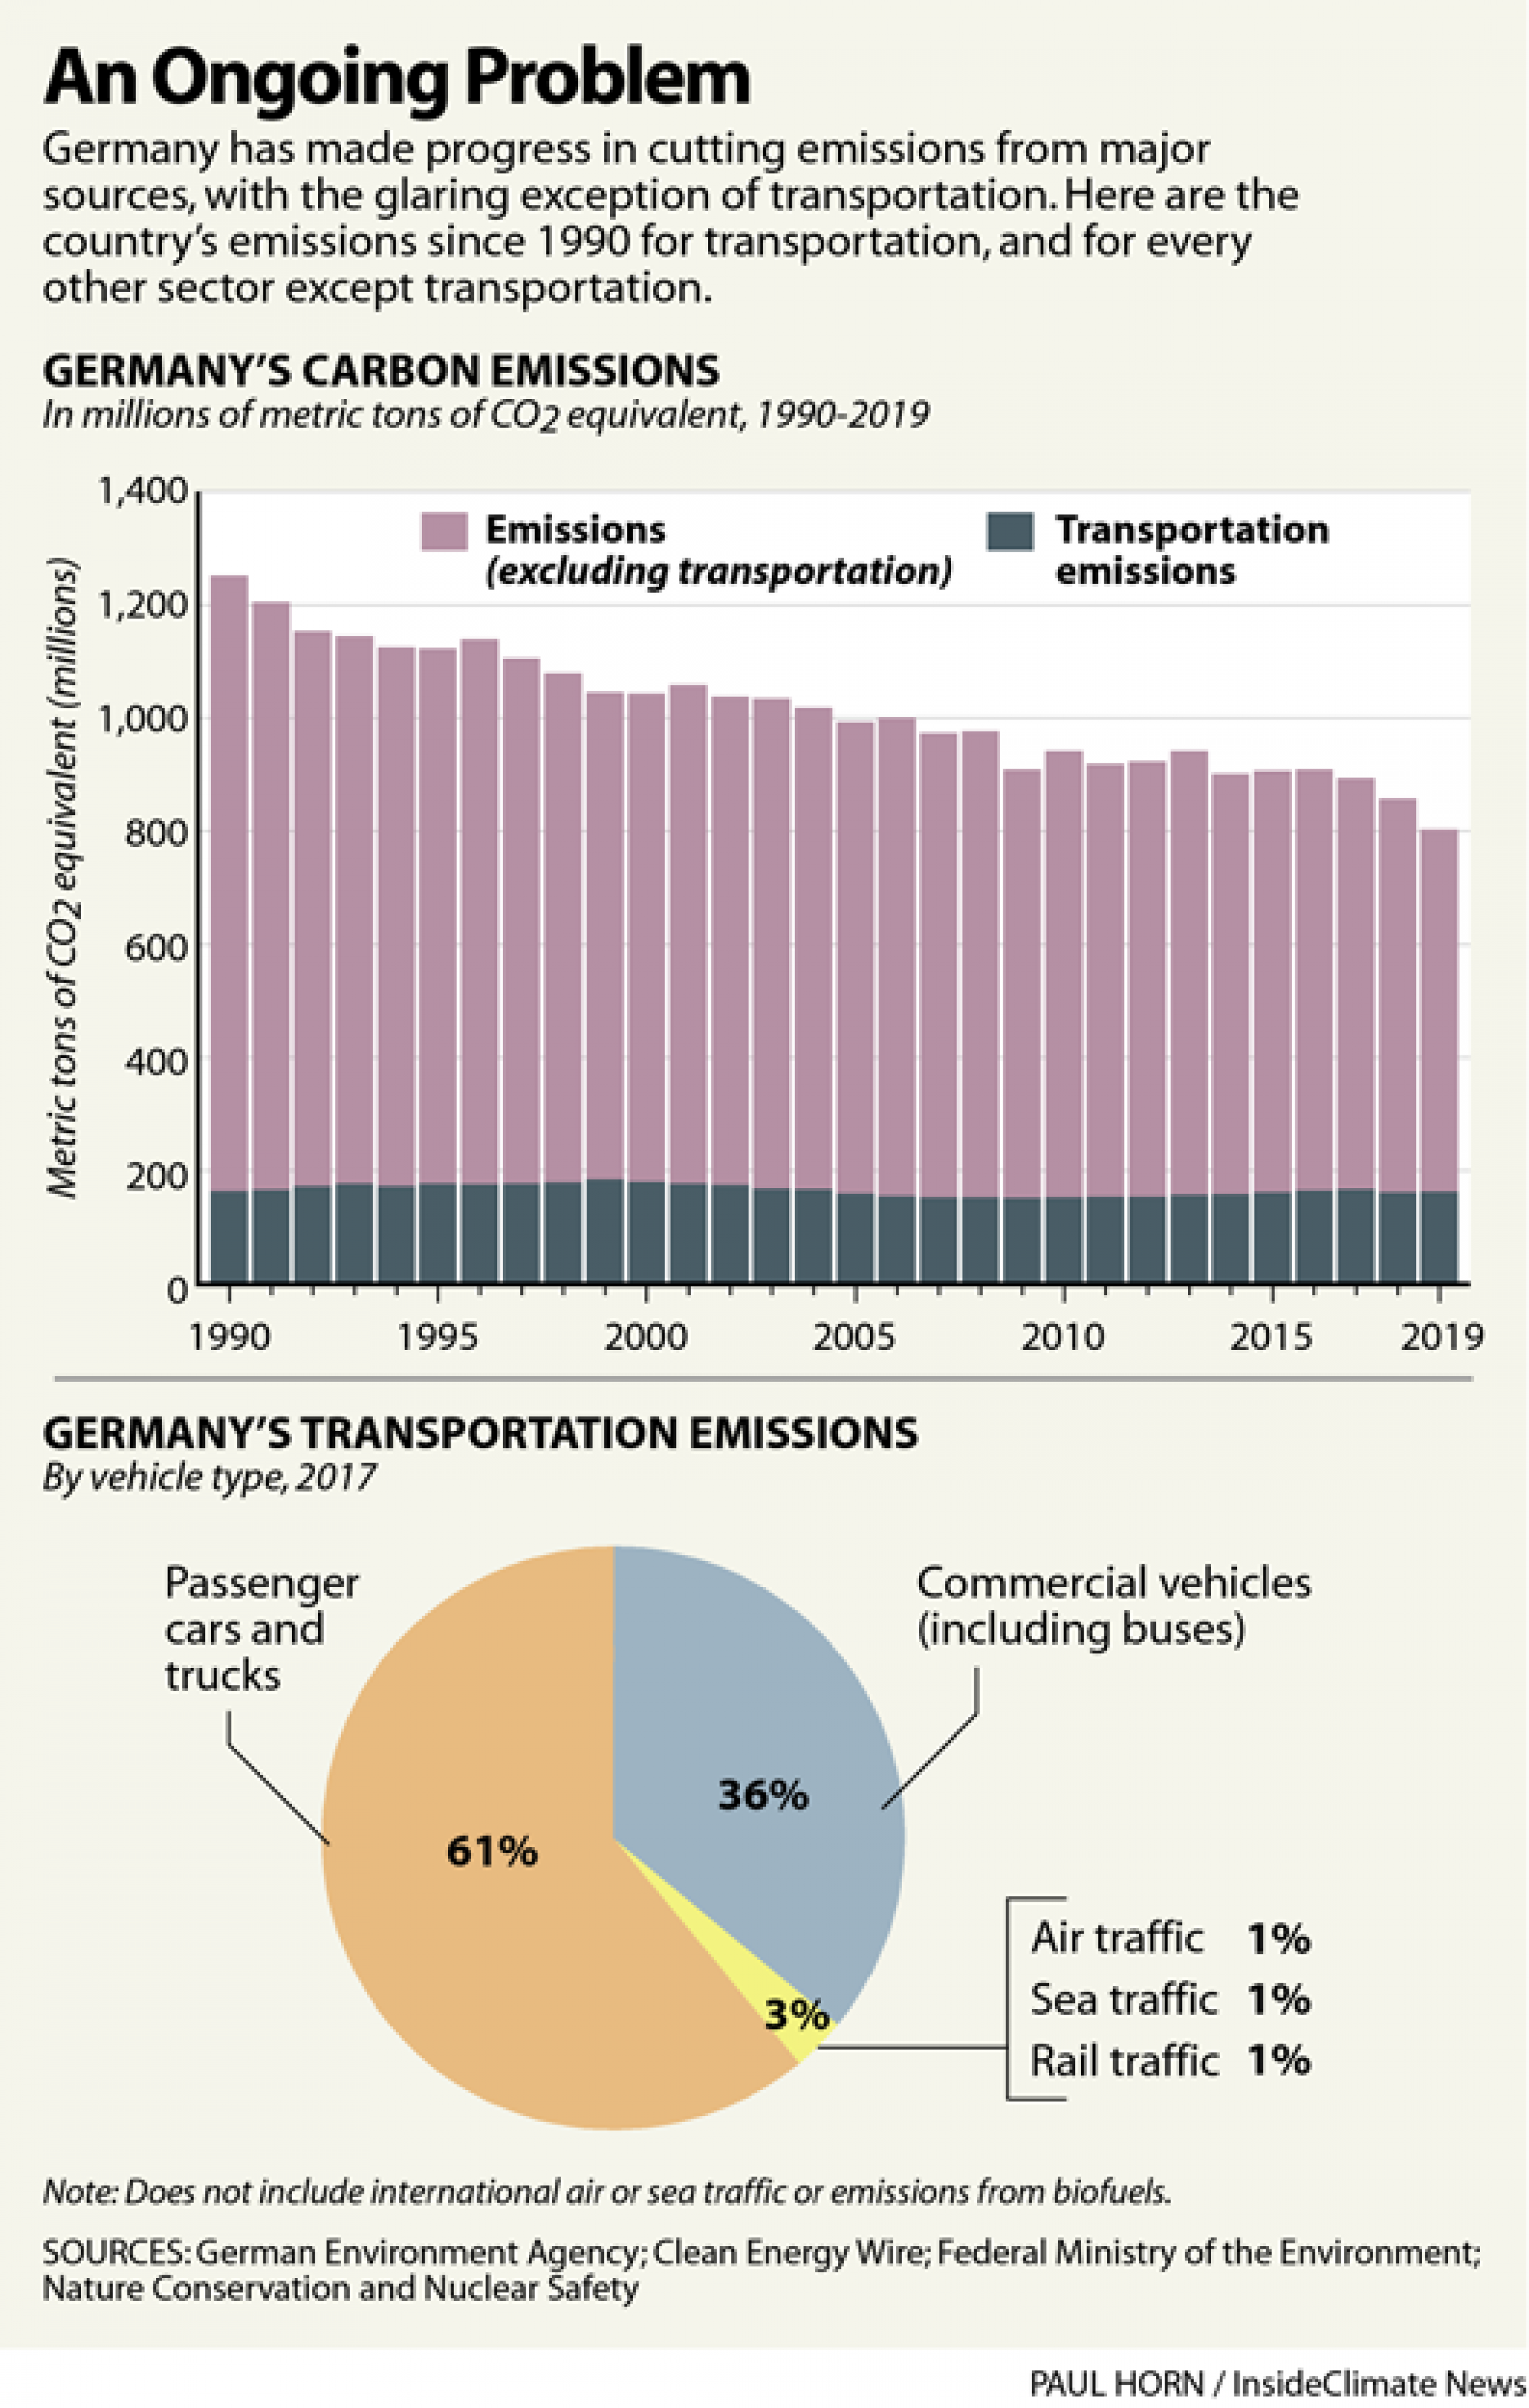 A bar graph showing Germany's auto emissions.